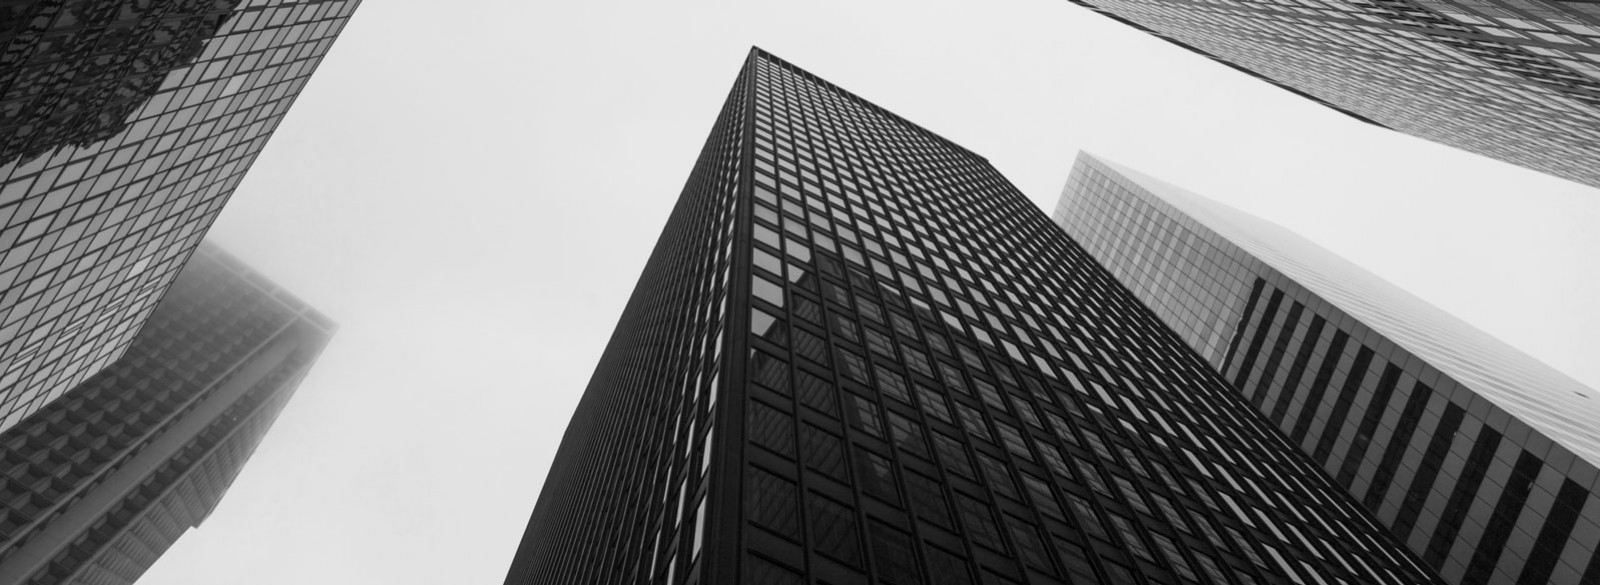 low angle photo of skyscrapers